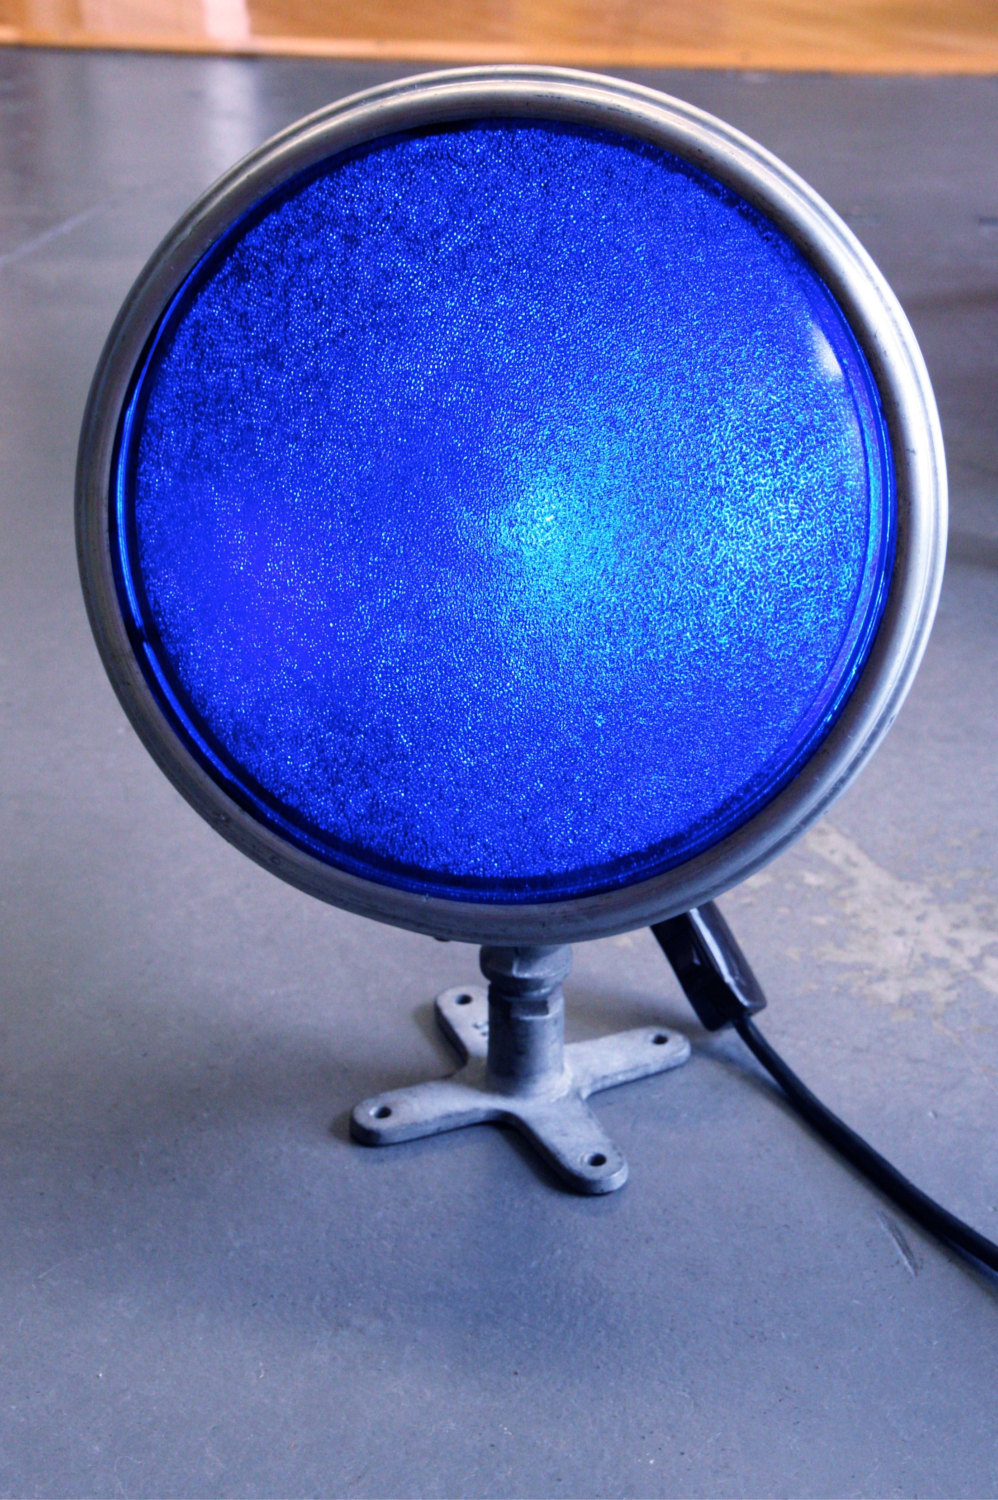 Vintage 1930s Aluminum and Glass Flood Light with Original Cobalt Blue Lense